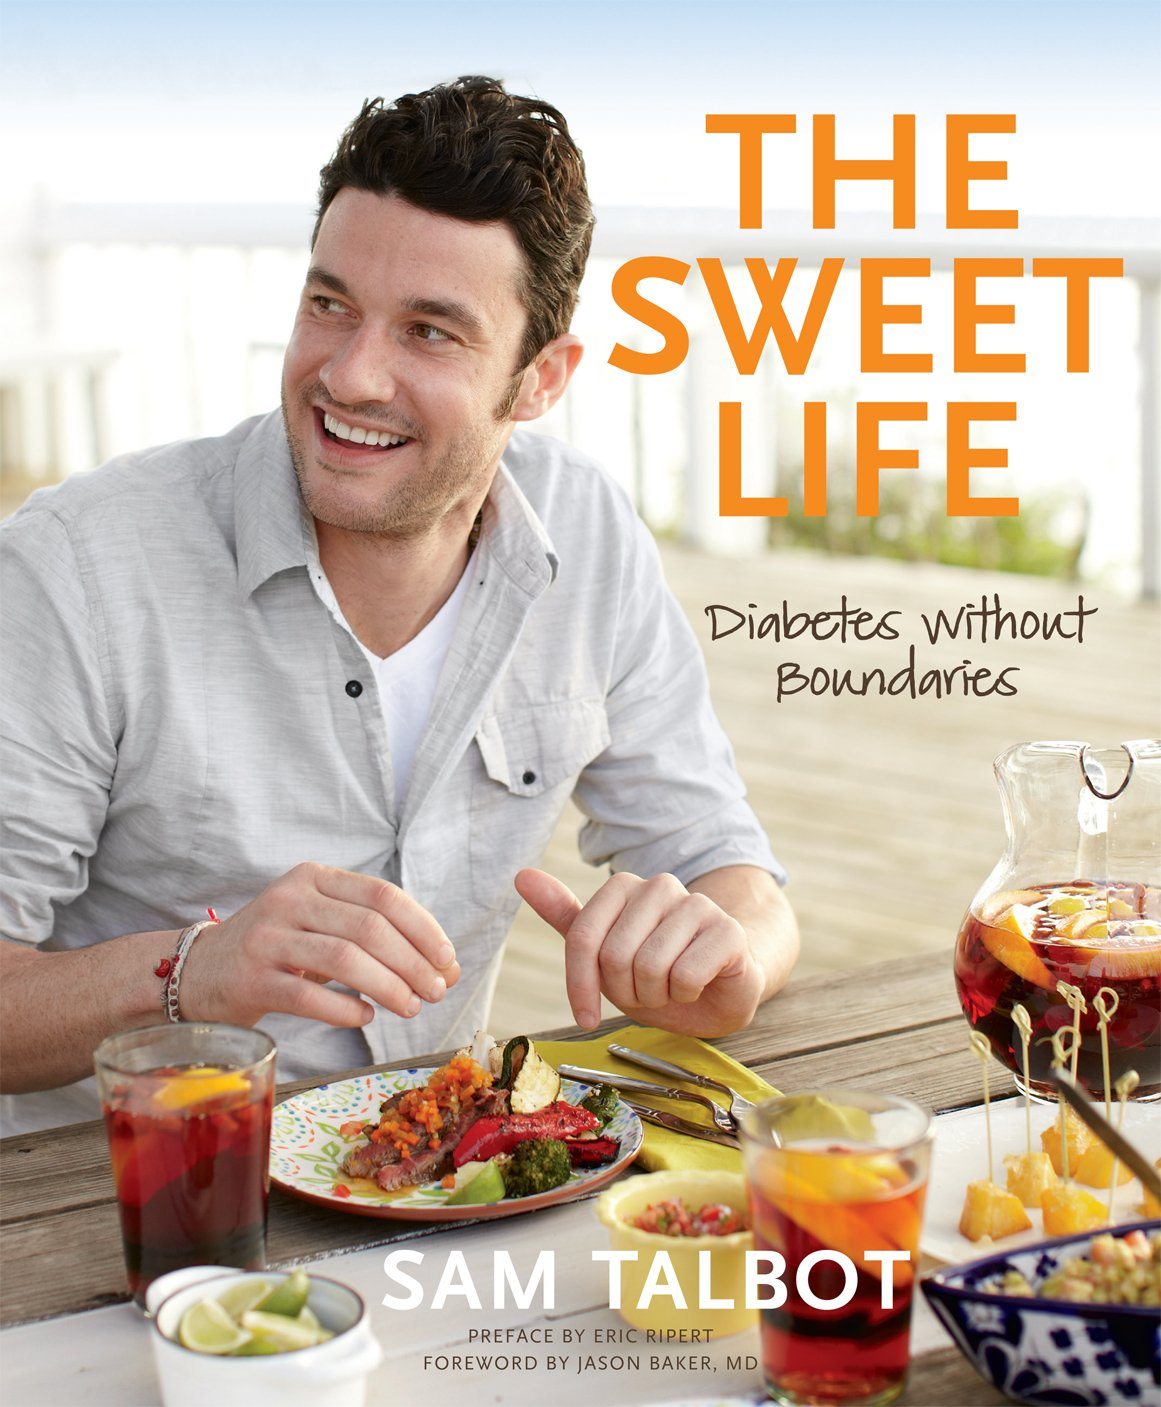 Sam talbot cookbook